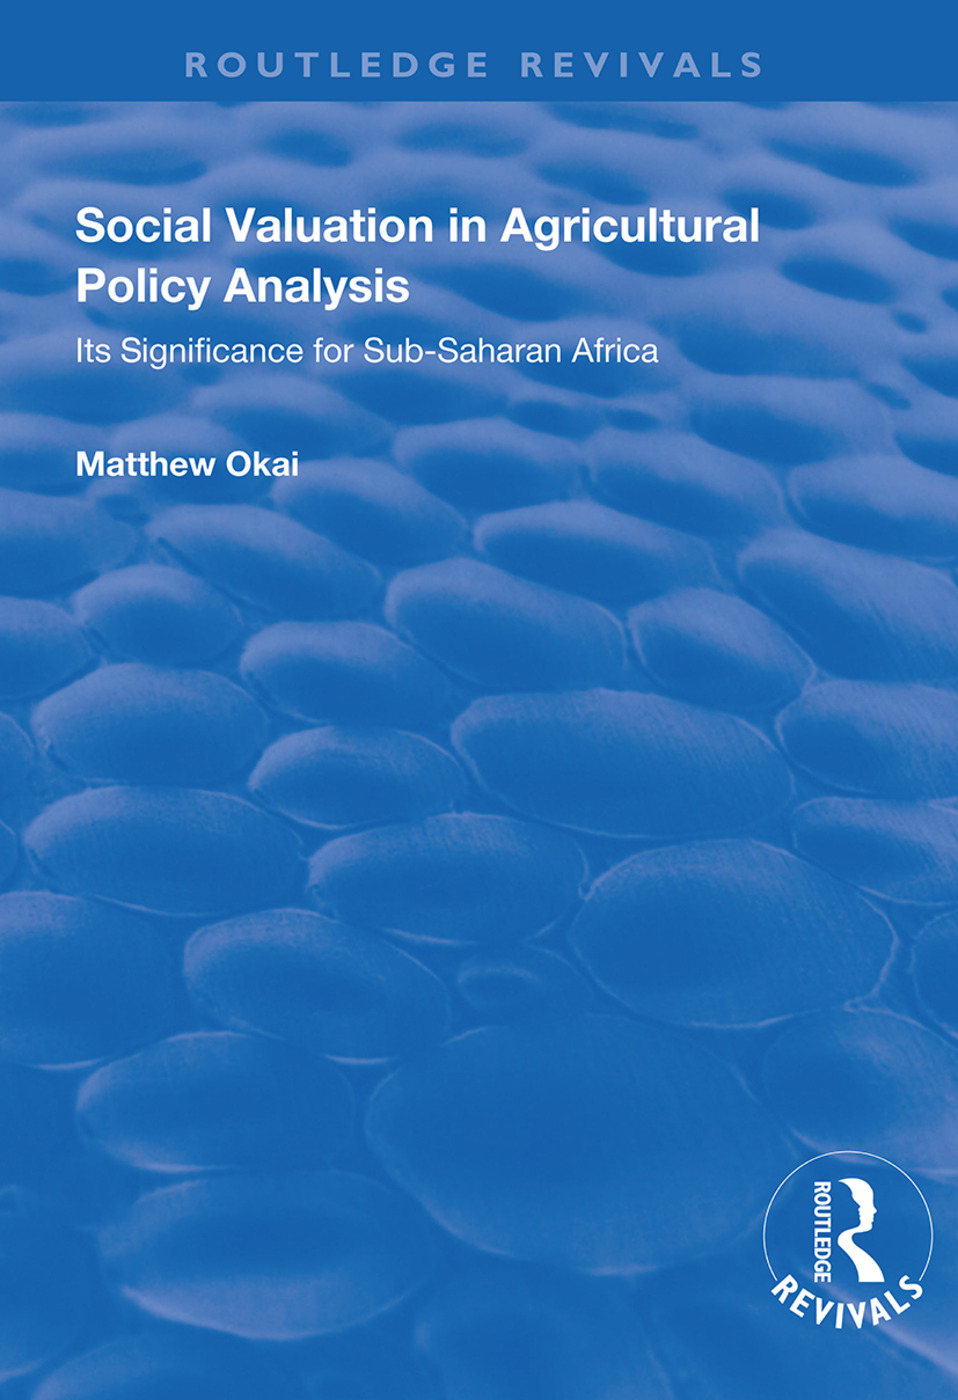 Social Valuation in Agricultural Policy Analysis: Its Significance for Sub-Saharan Africa book cover